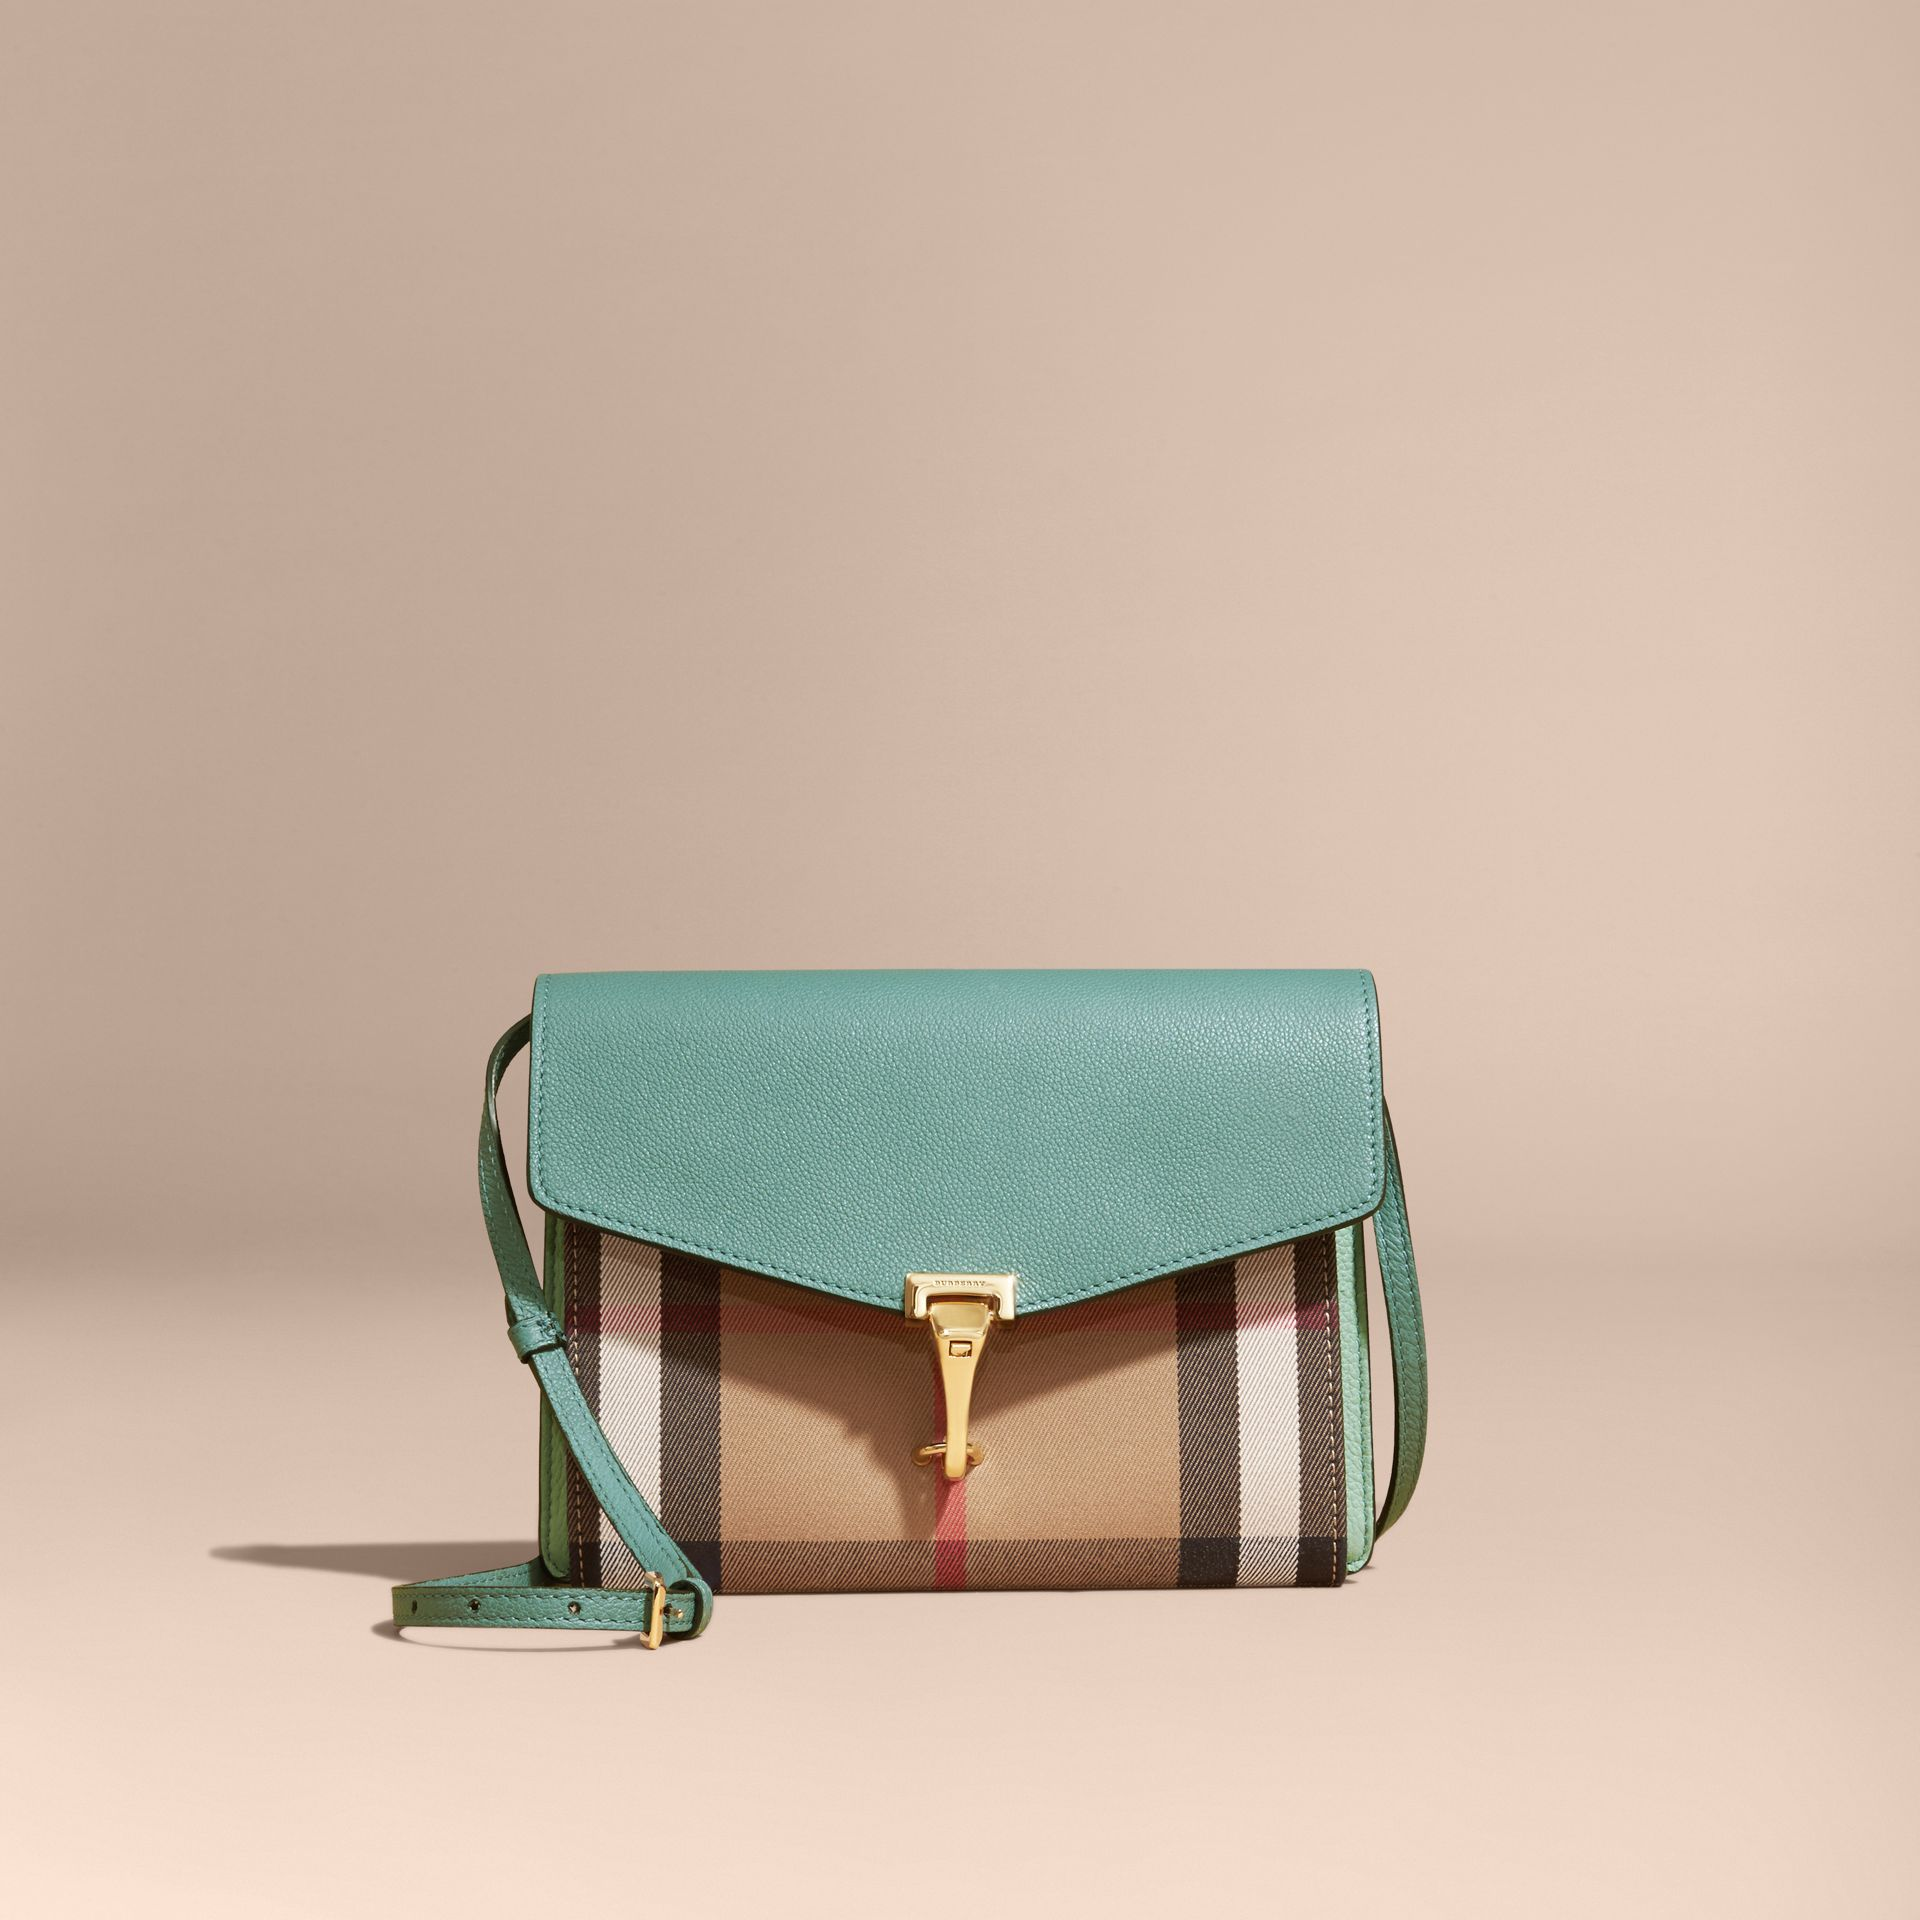 Celadon blue Small Leather and House Check Crossbody Bag Celadon Blue - gallery image 7